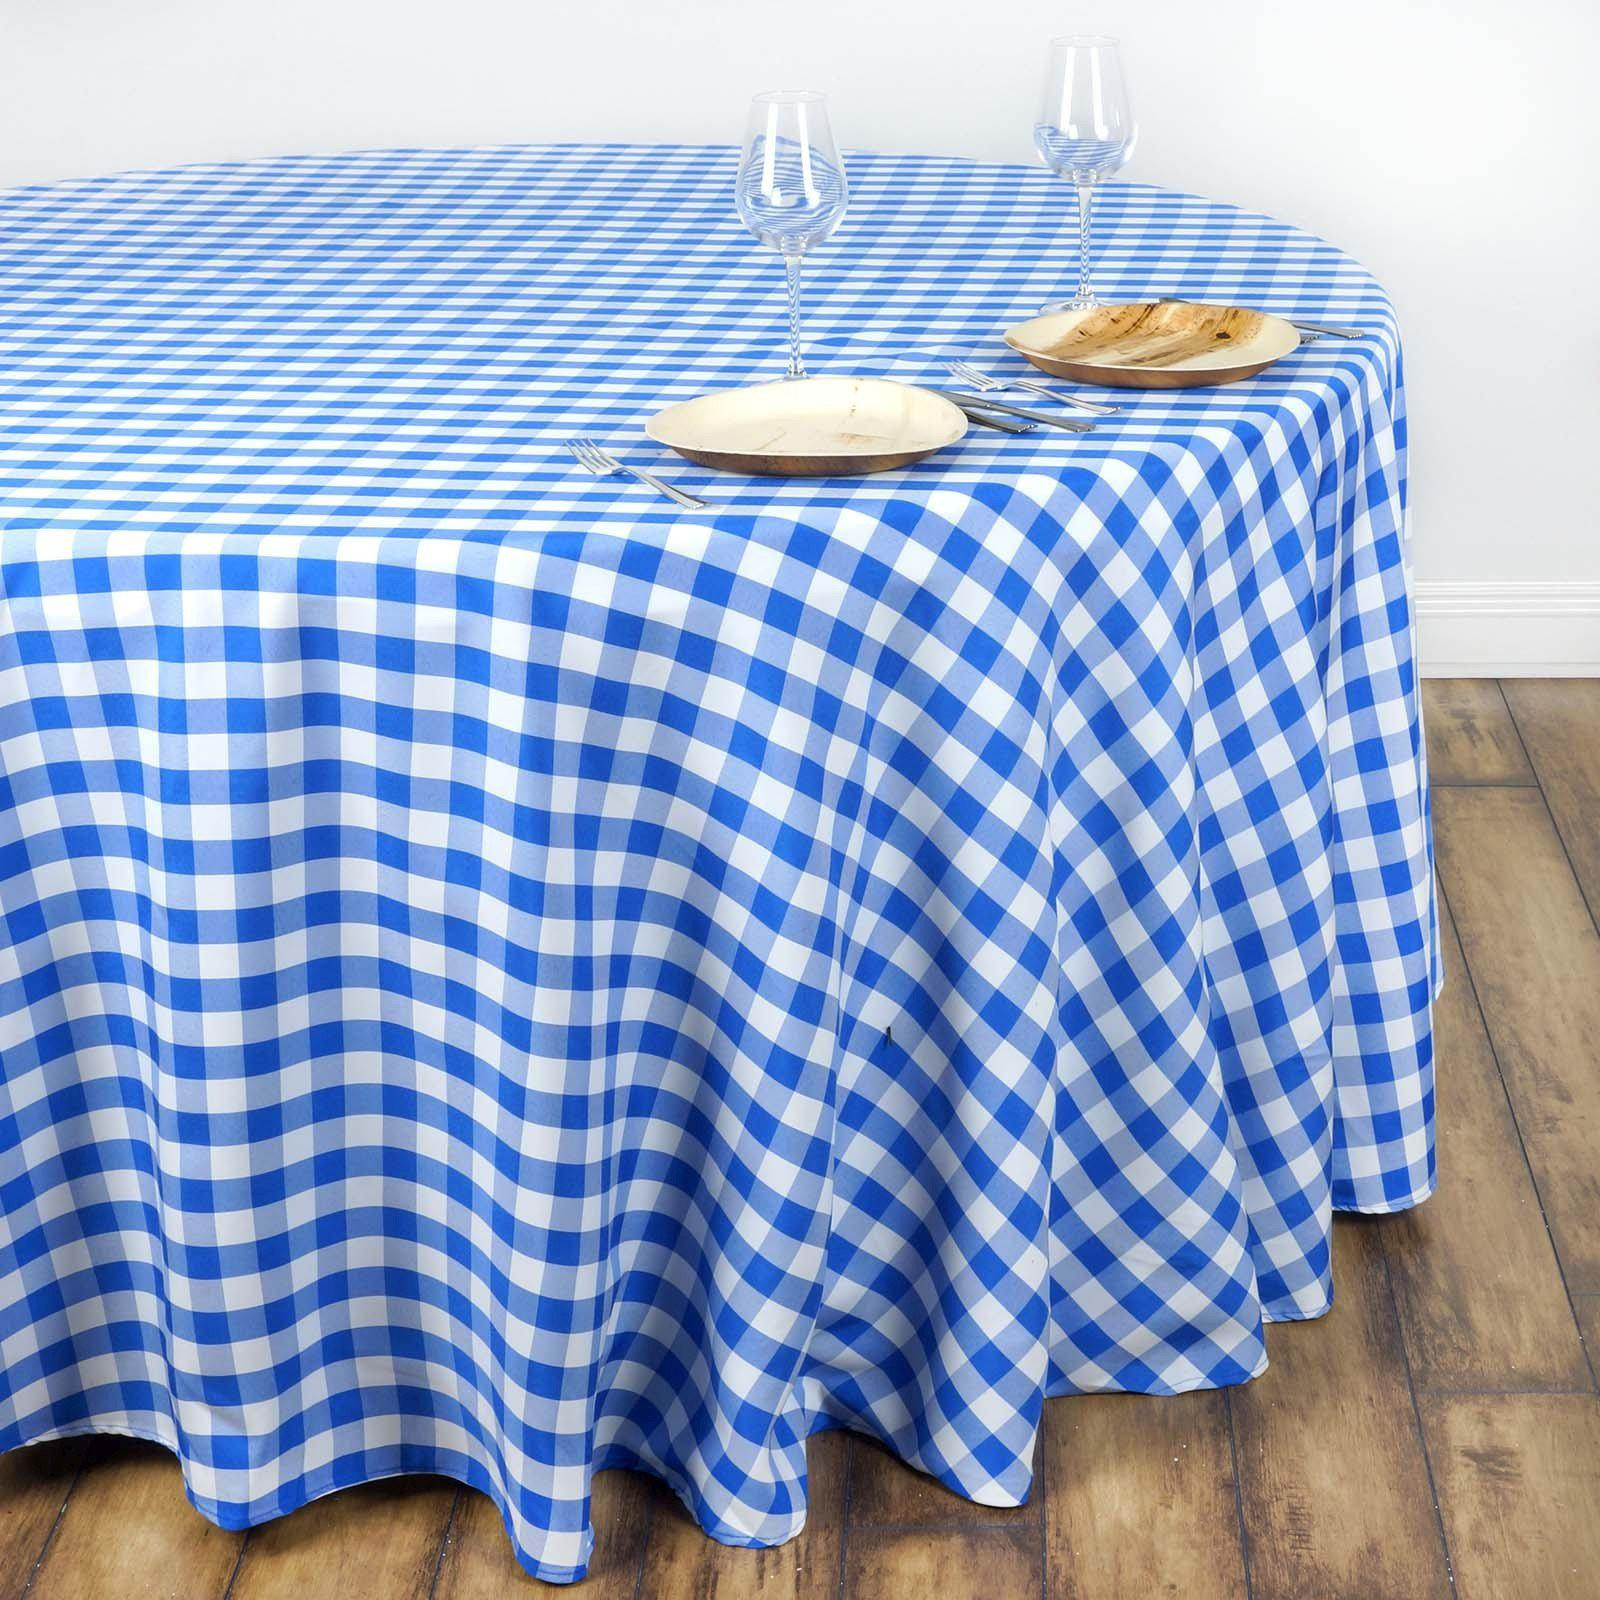 Charmant Tablecloths Factory